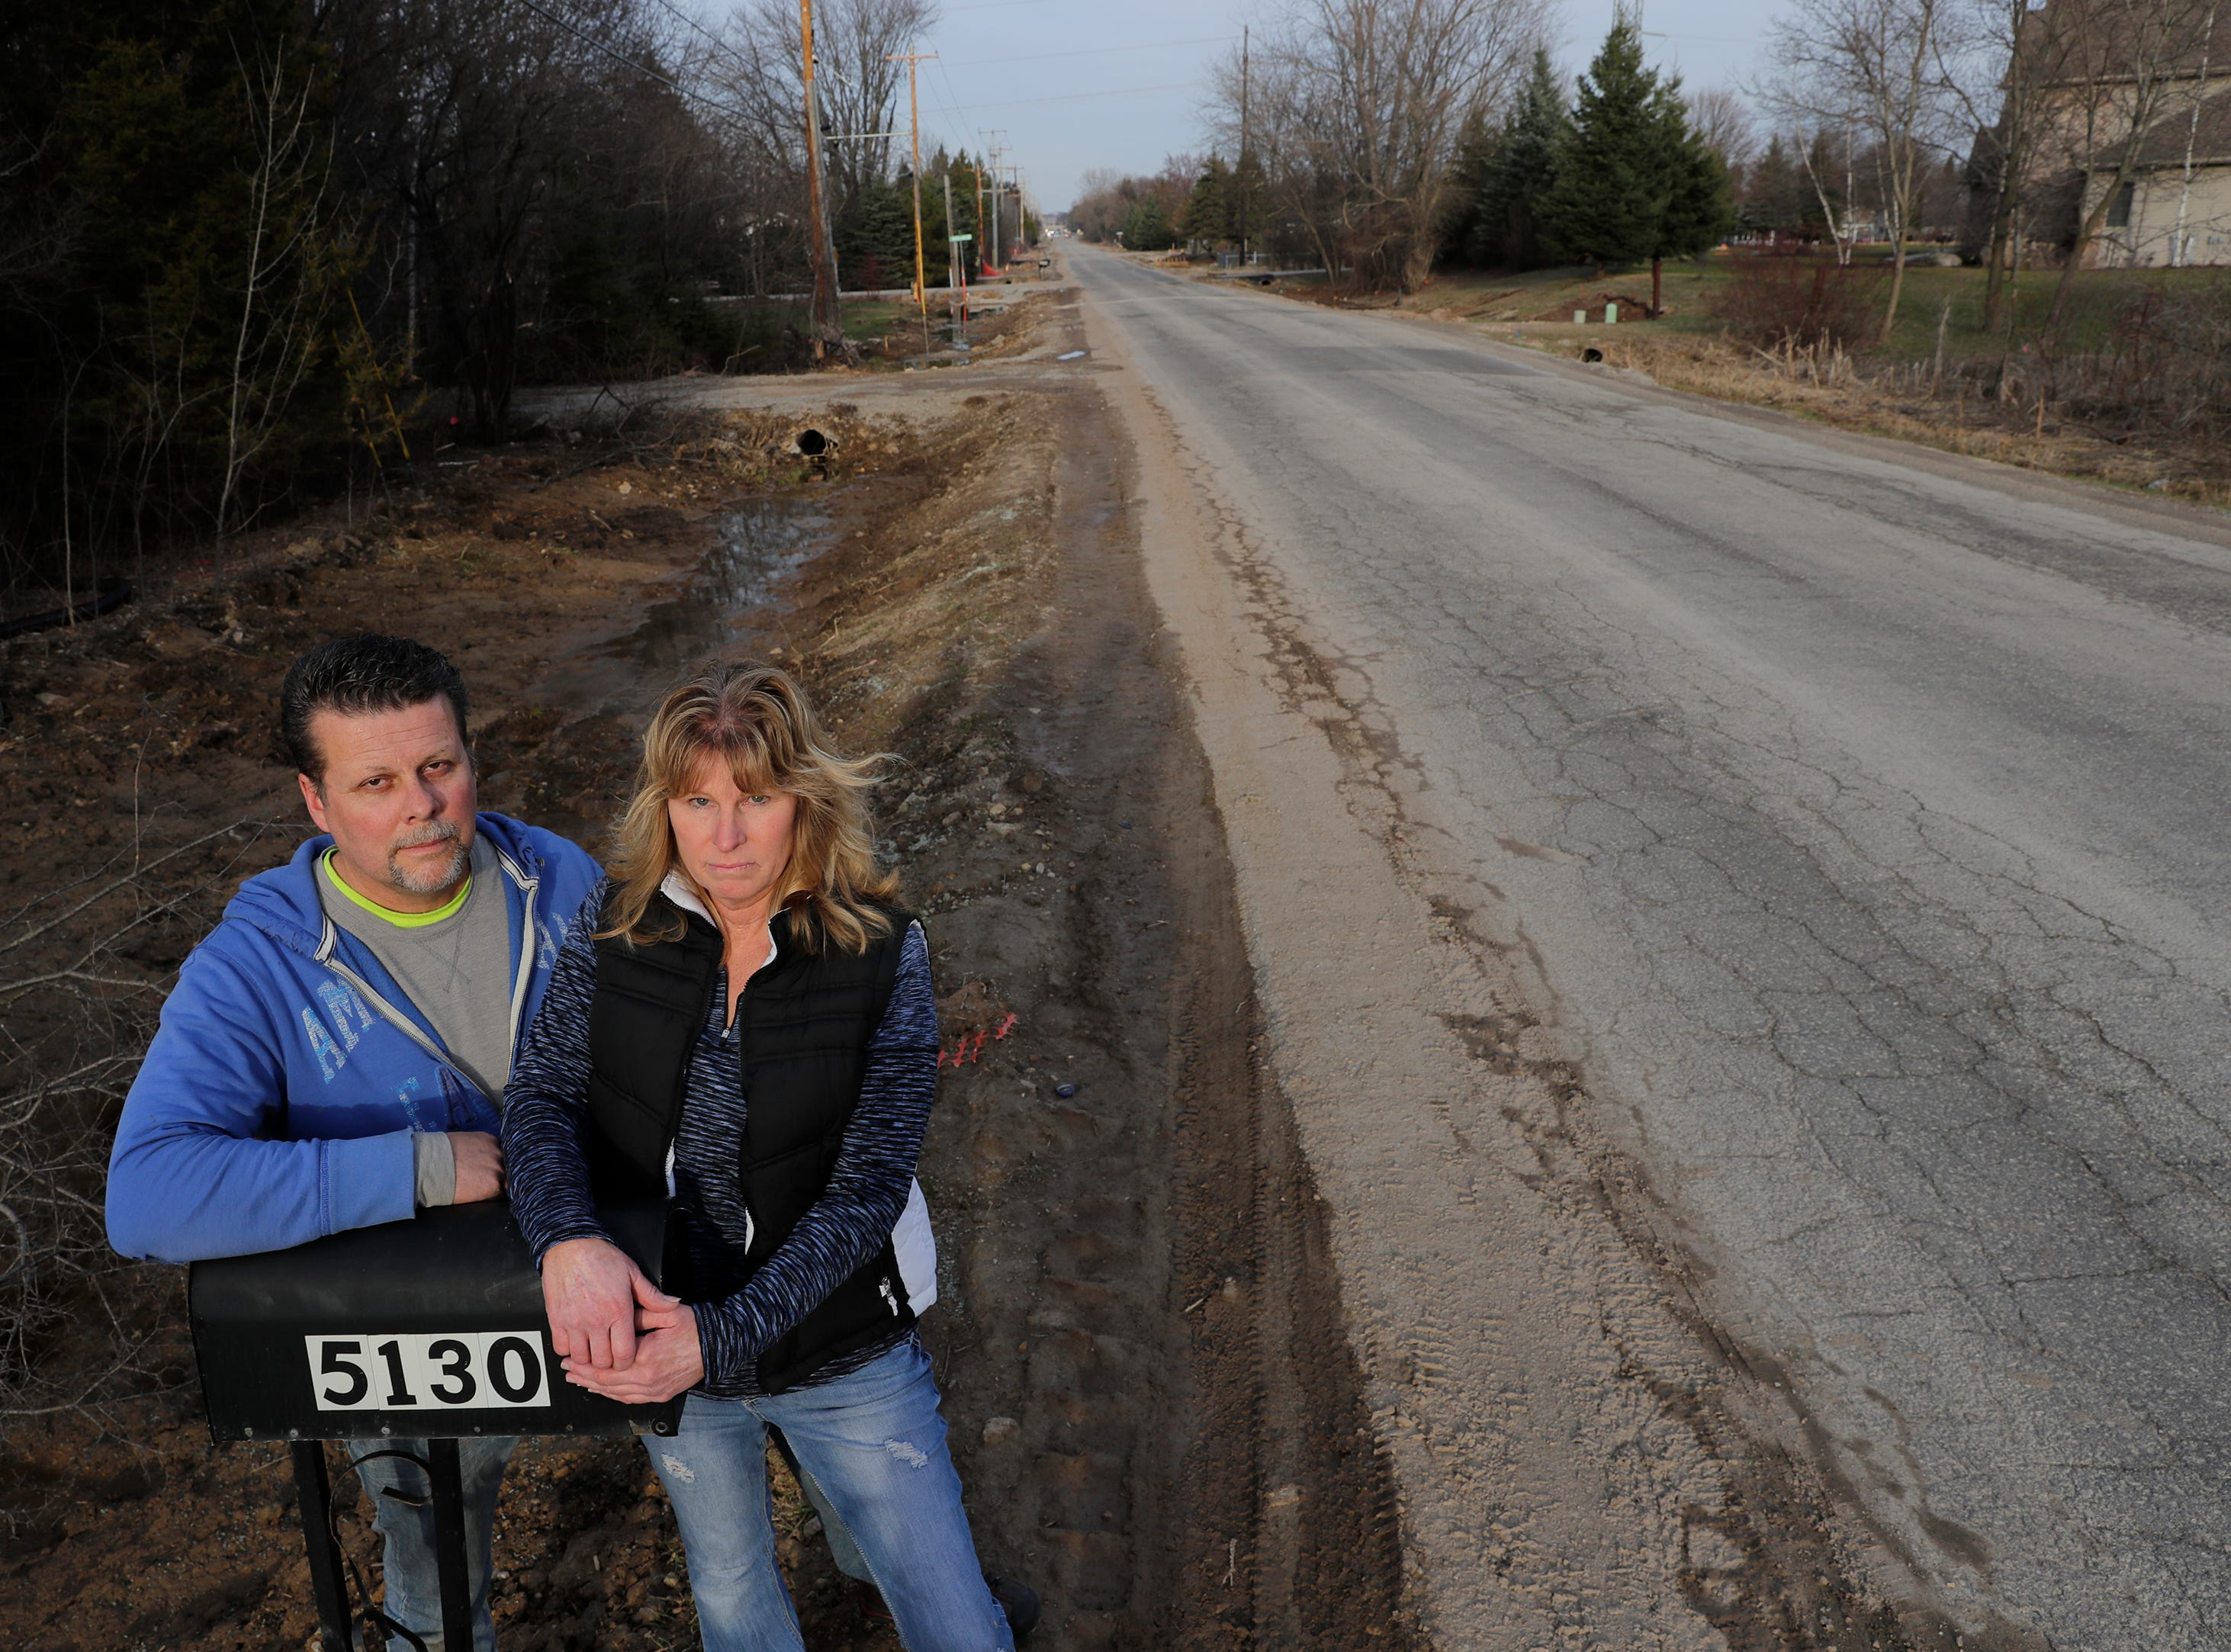 Residents David Mischler, left, and Patti Stenson are facing a $16,386 special assessment for the urbanization of Spencer Street between Casaloma Drive and Mayflower Drive. They are pictured here in front of the home located at 5130 W. Spencer Street Tuesday, April 16, 2019, Grand Chute, Wis. Dan Powers/USA TODAY NETWORK-Wisconsin